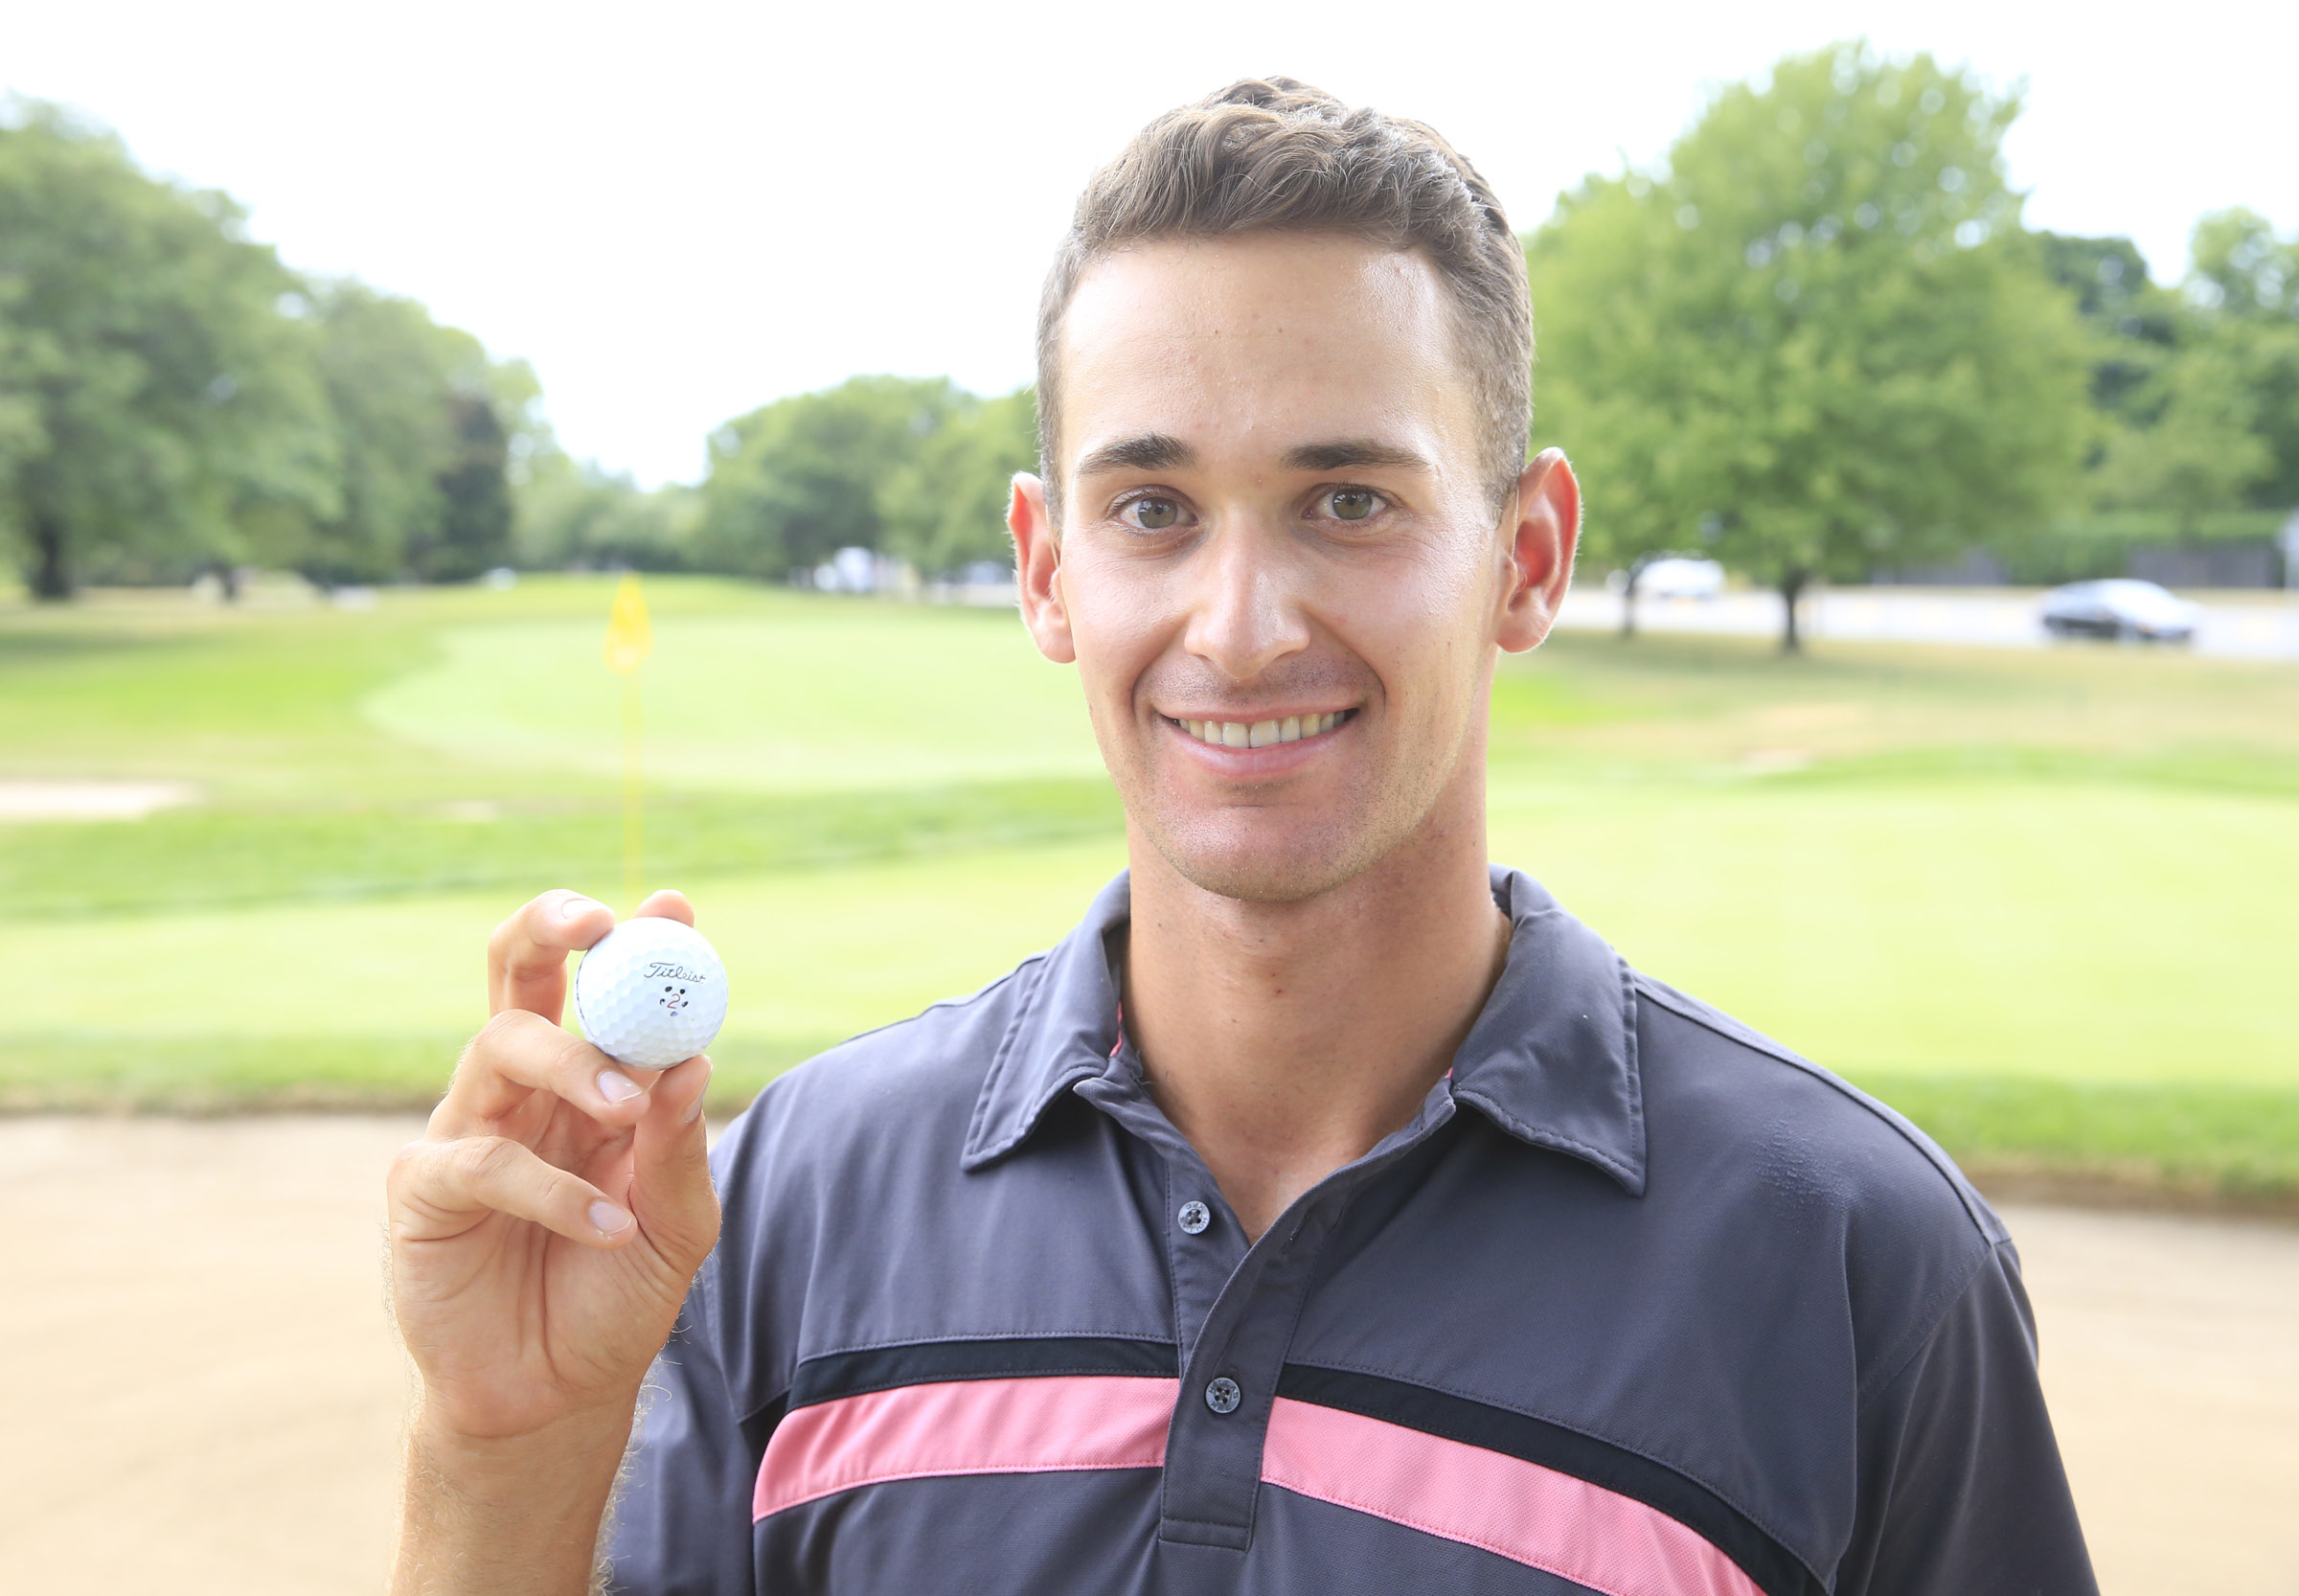 Russell Bowie made a hole-in-one on the 18th hole Thursday during the second round of the Porter Cup. (Harry Scull Jr./Buffalo News)